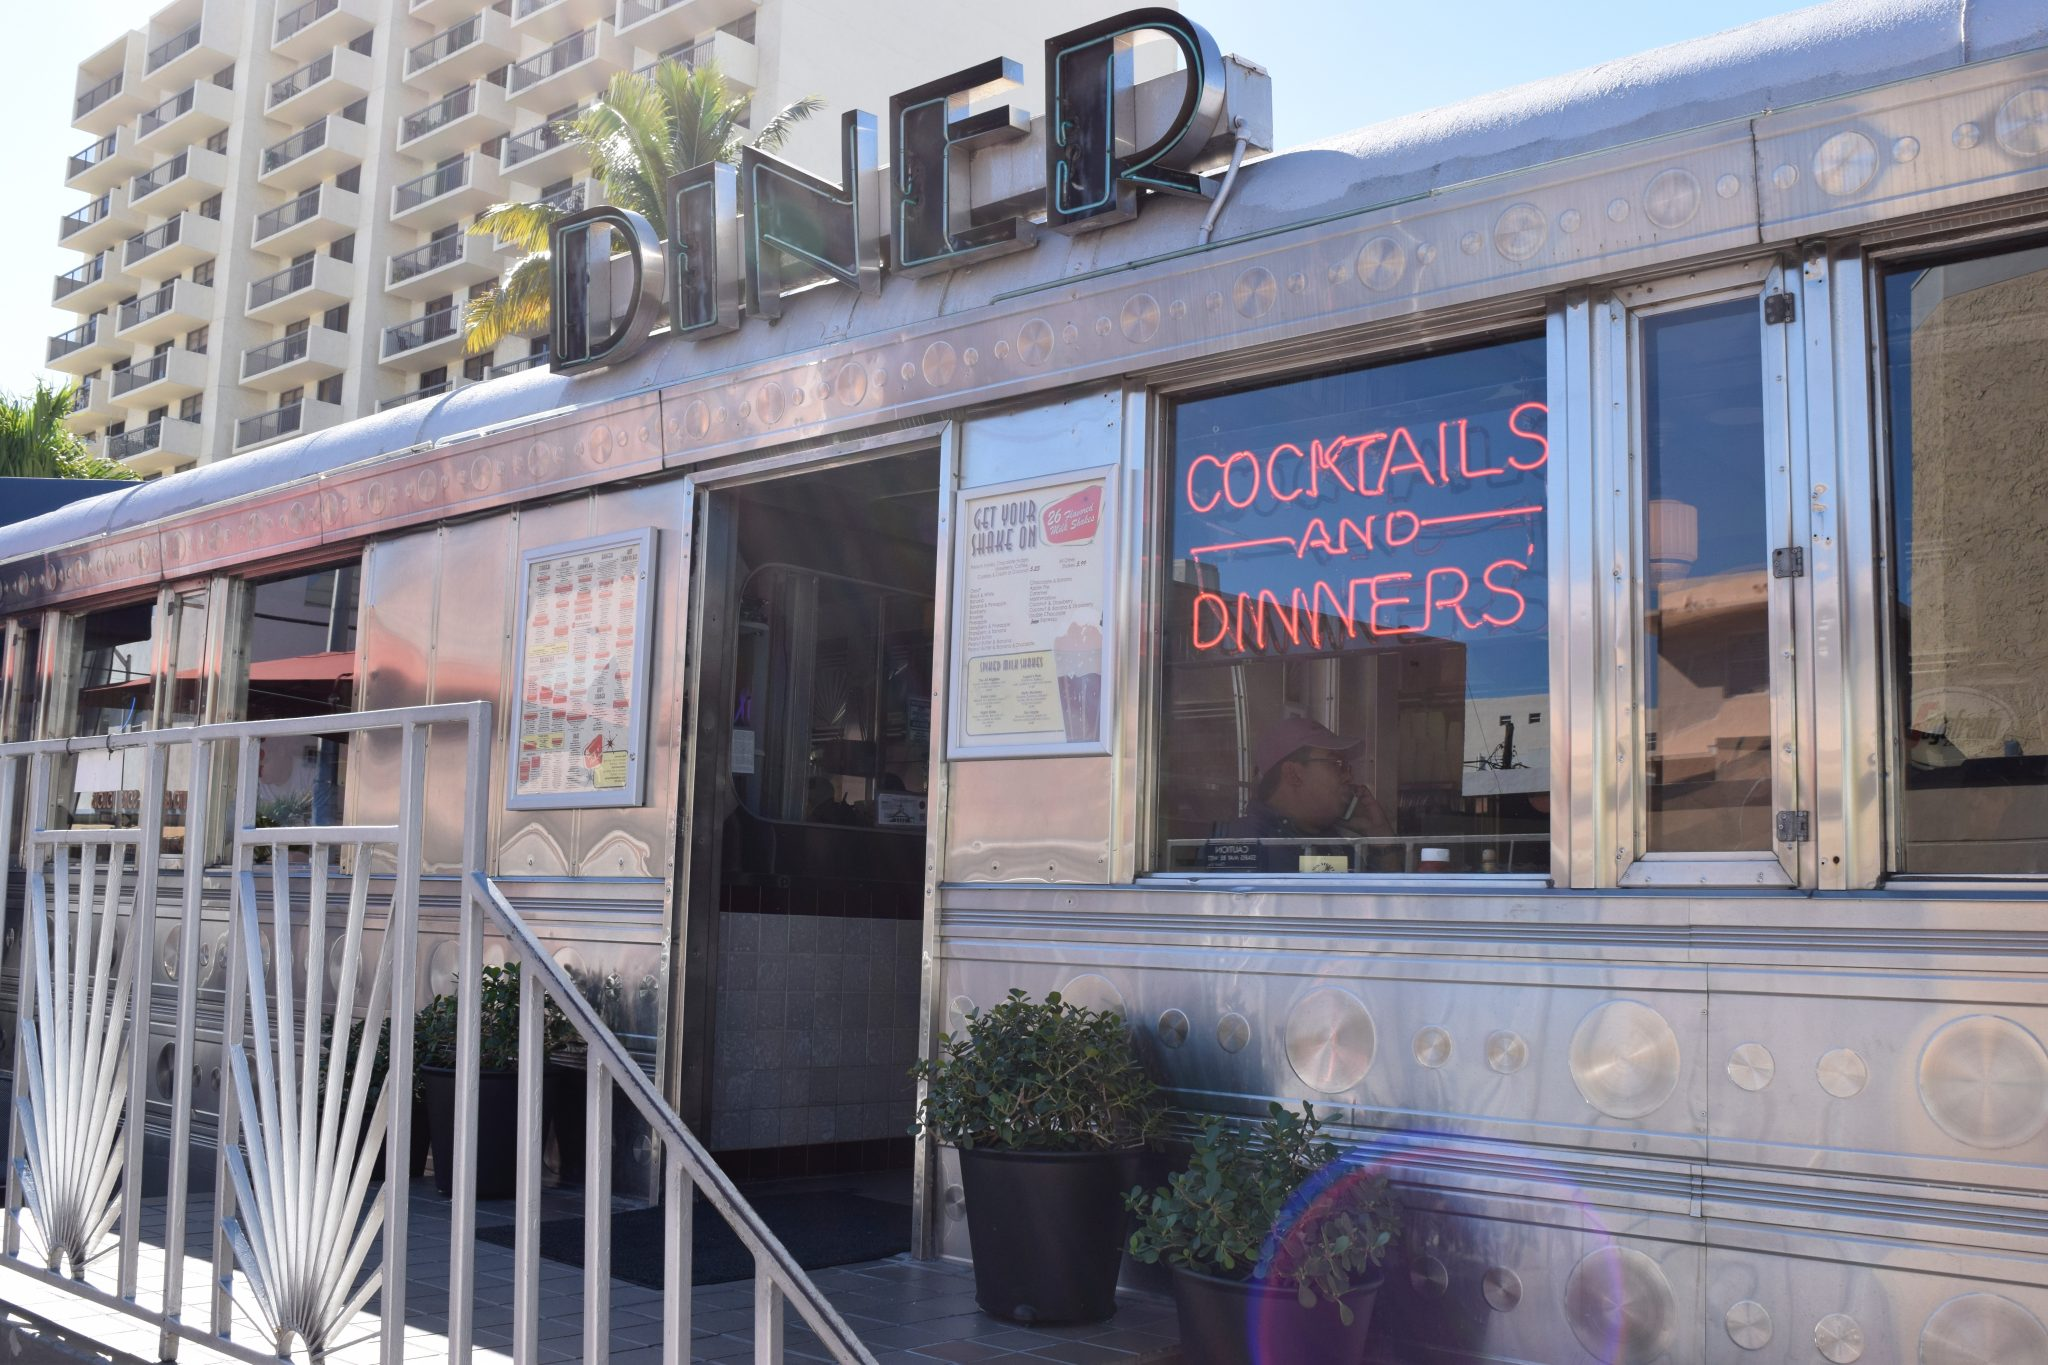 11th-st-diner-review